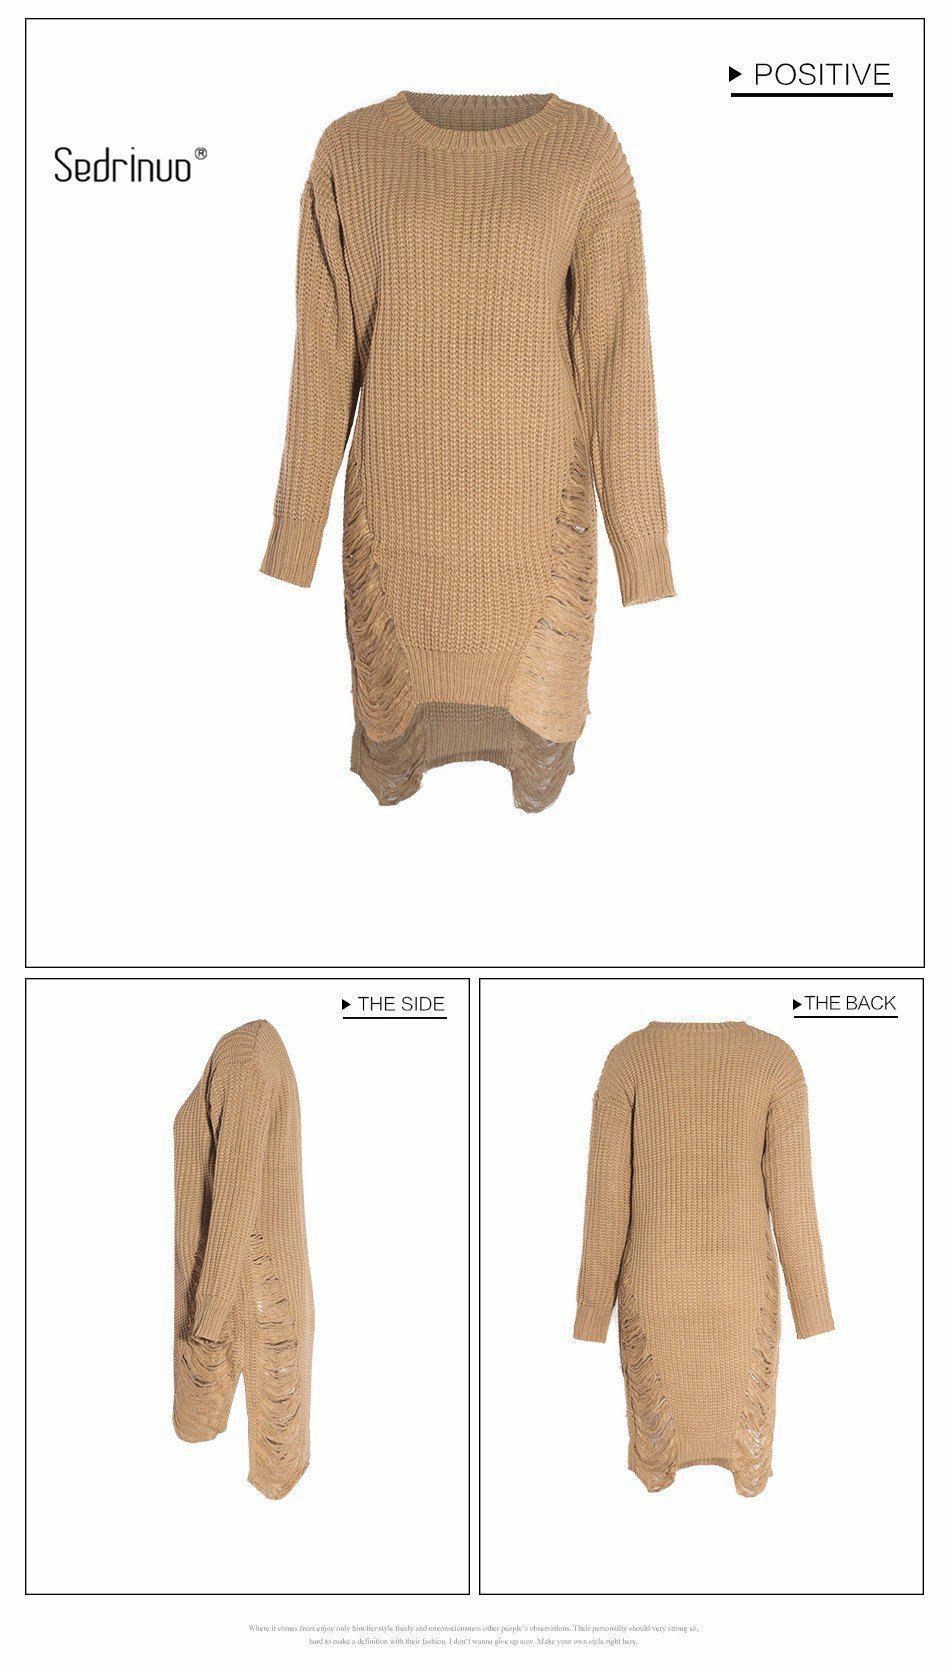 Sedrinuo Casual Knitted Sweater Dresses Women Long Sleeve pullover Round Neck Bodycon Irregular Khaki/Black Loose Sweater Dress-Dress-SheSimplyShops